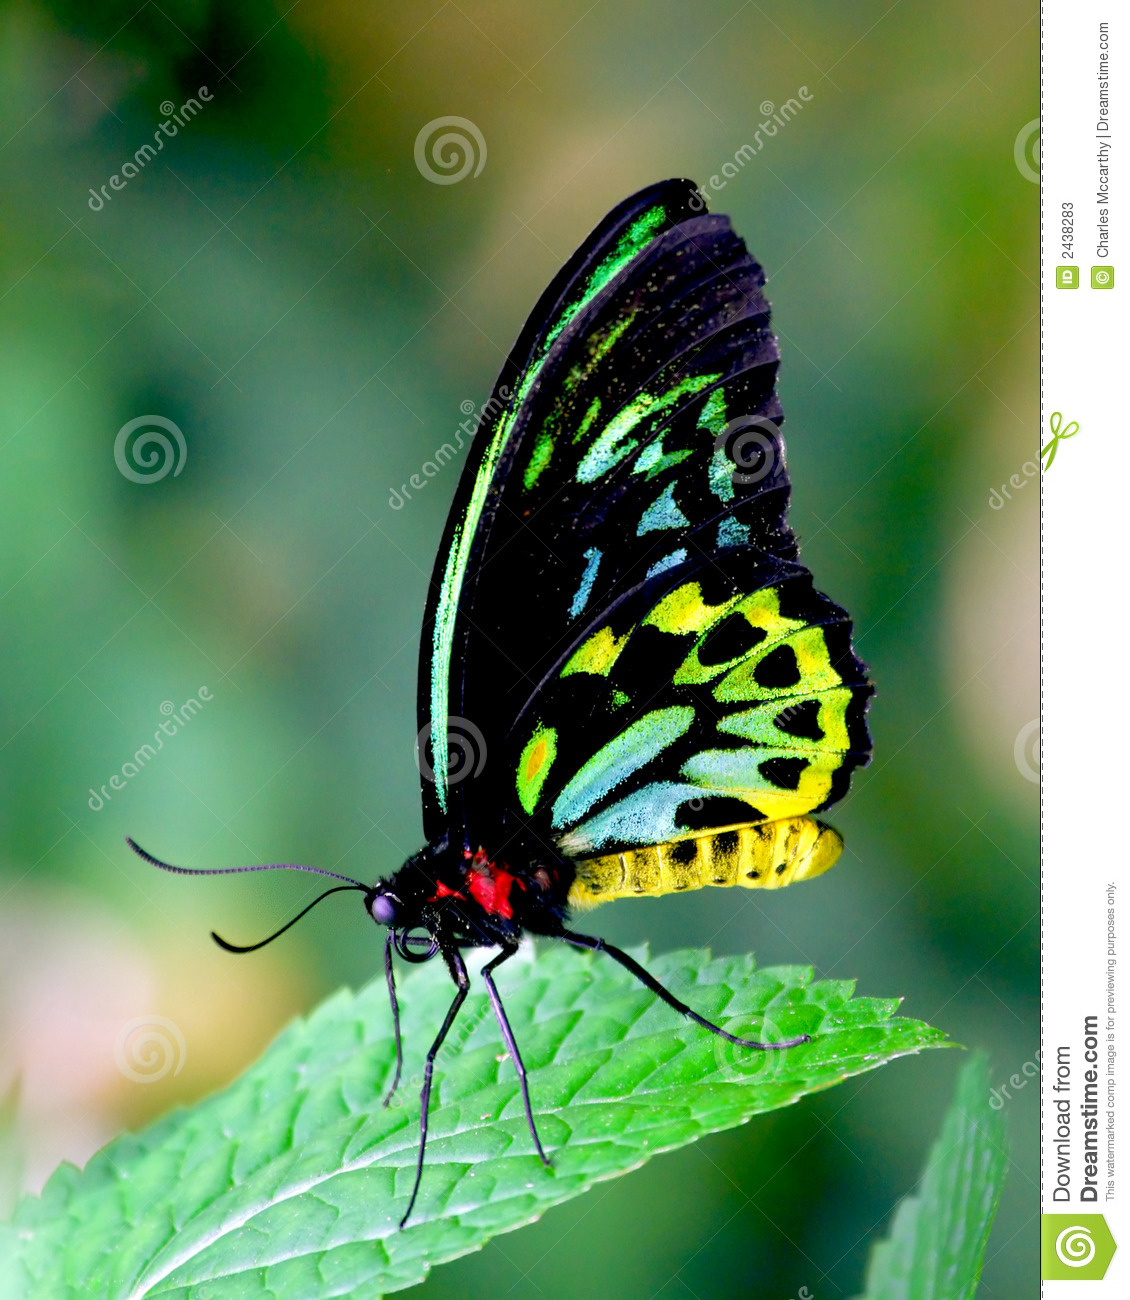 Butterfly beauty stock image Image of colors free